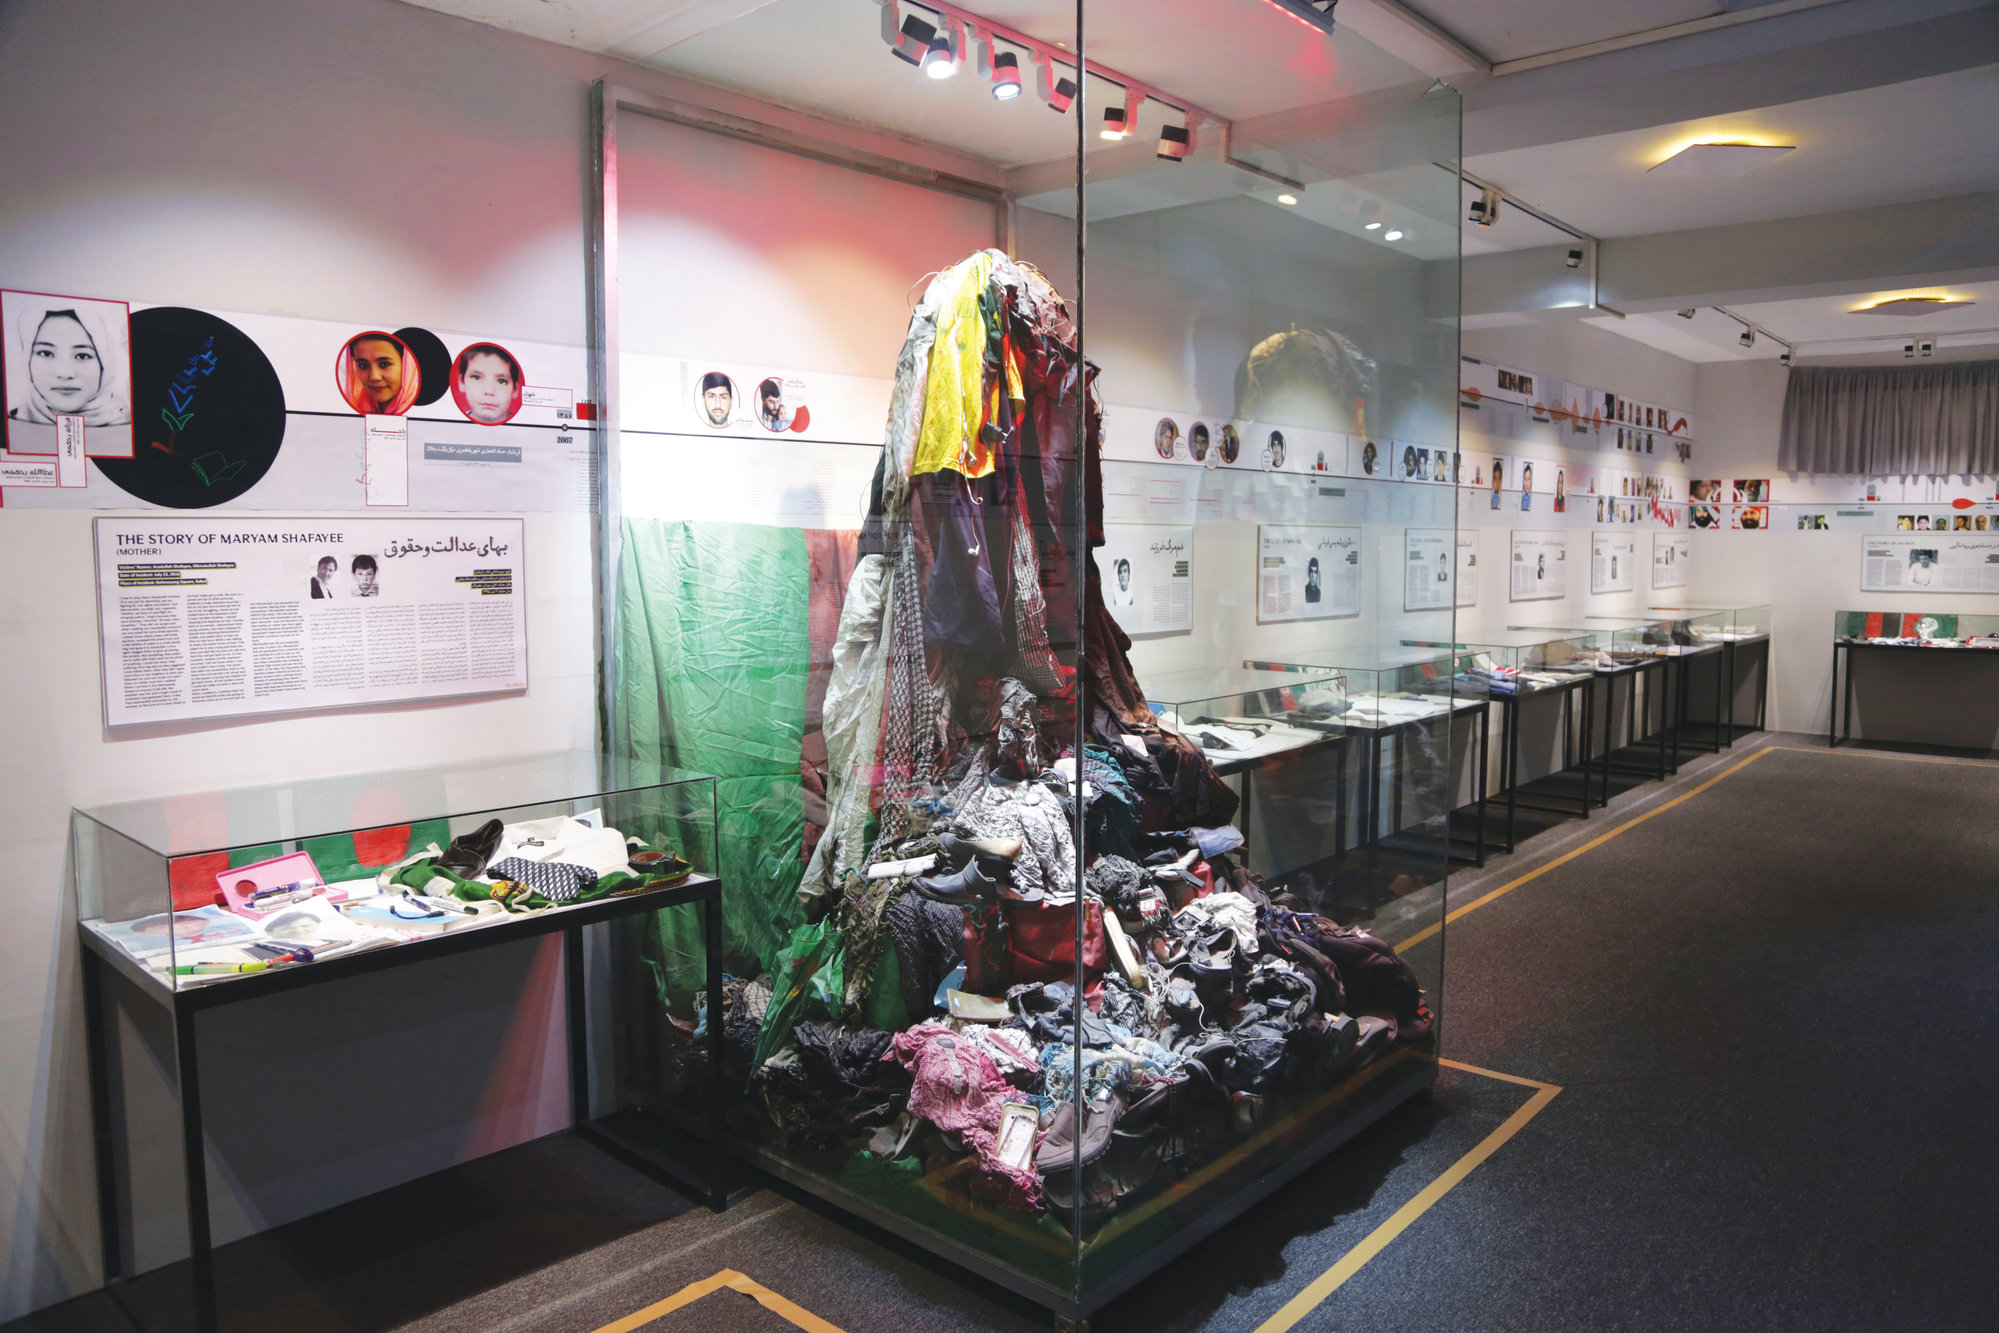 Belongings of war victims are displayed in the Afghanistan Center for Memory and Dialogue.